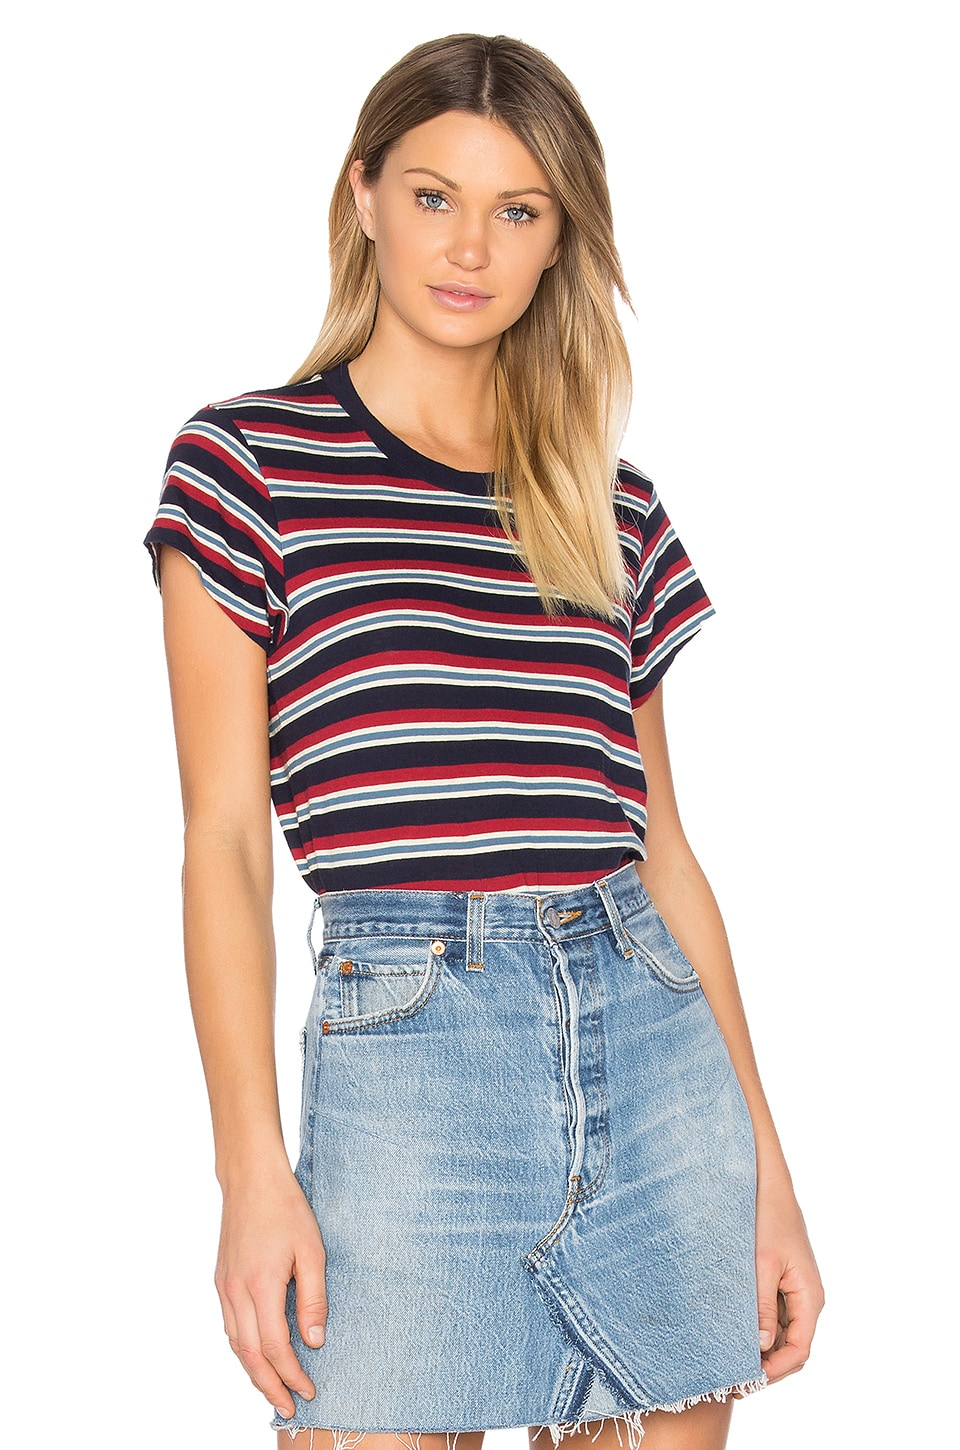 RE/DONE Boxy Striped Tee in Red & White